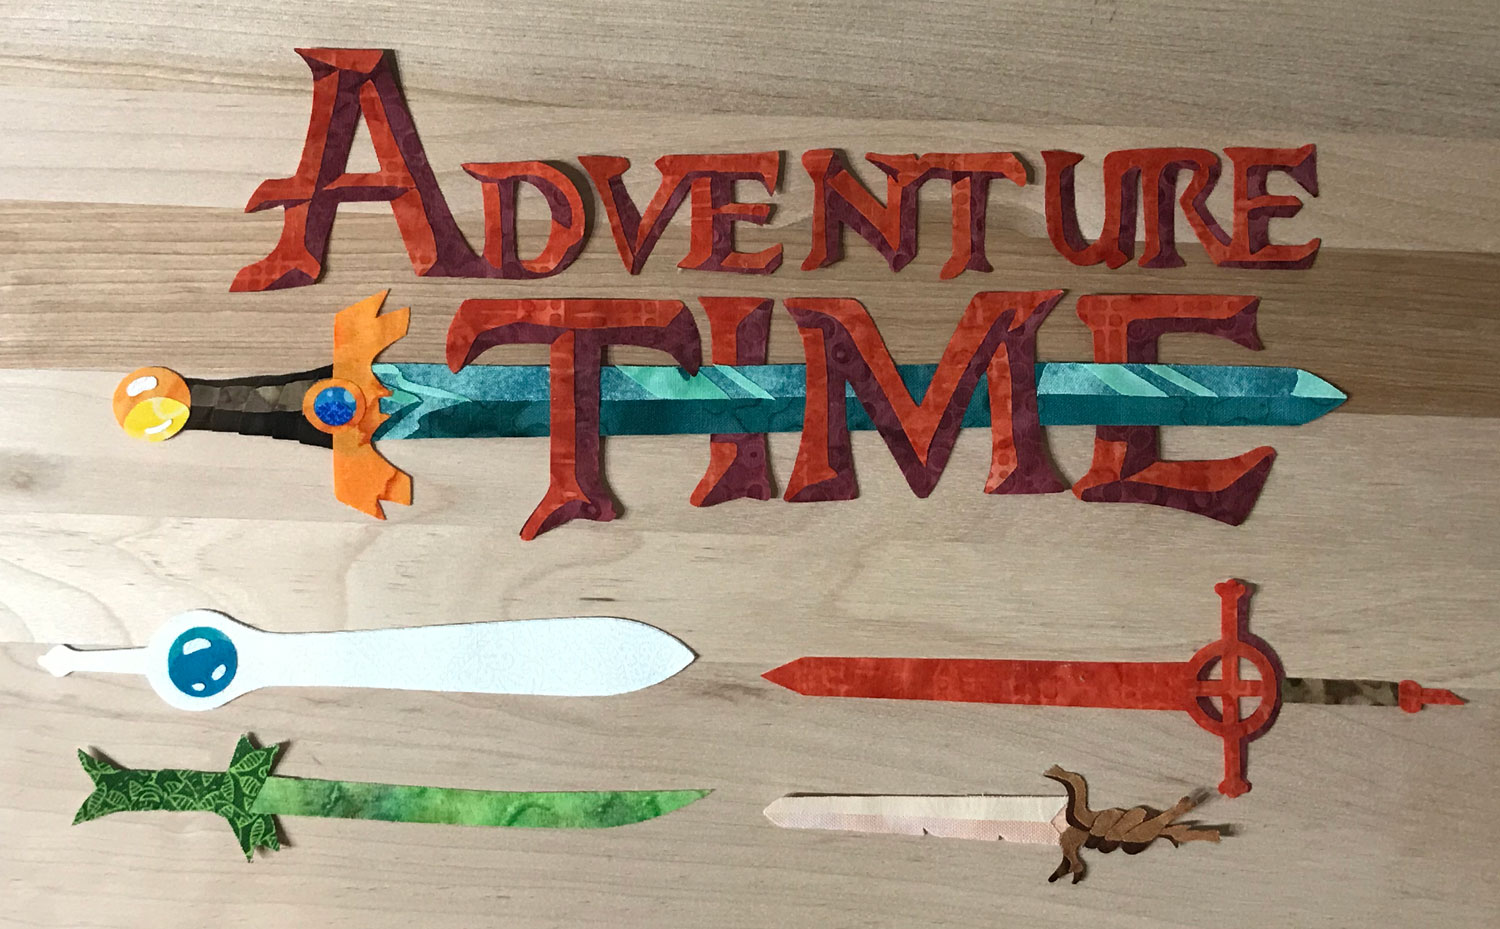 Adventure Time logo and swords